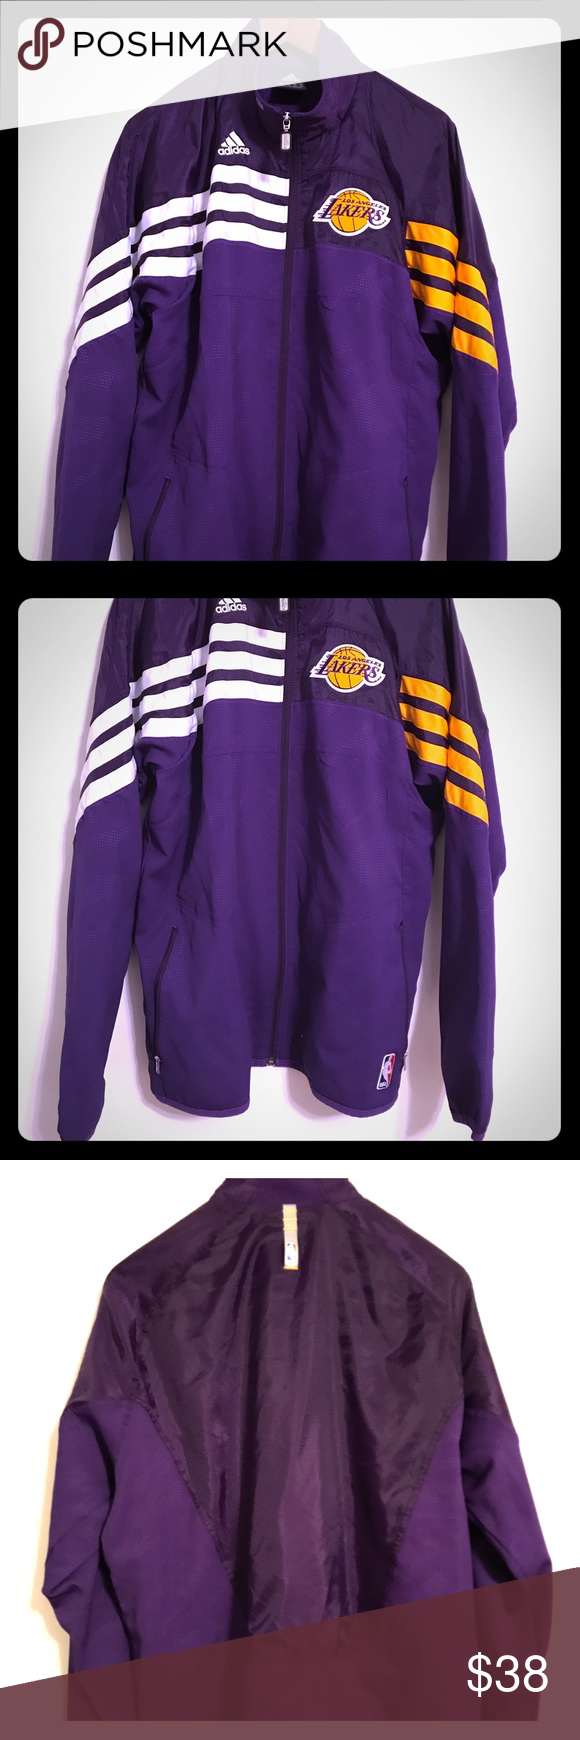 1327df718df Official NBA Lakers Warm-Up Jacket by Adidas A high quality sports jacket  perfect for basketball, and casual wear. It is a must have item for any  Laker fan ...